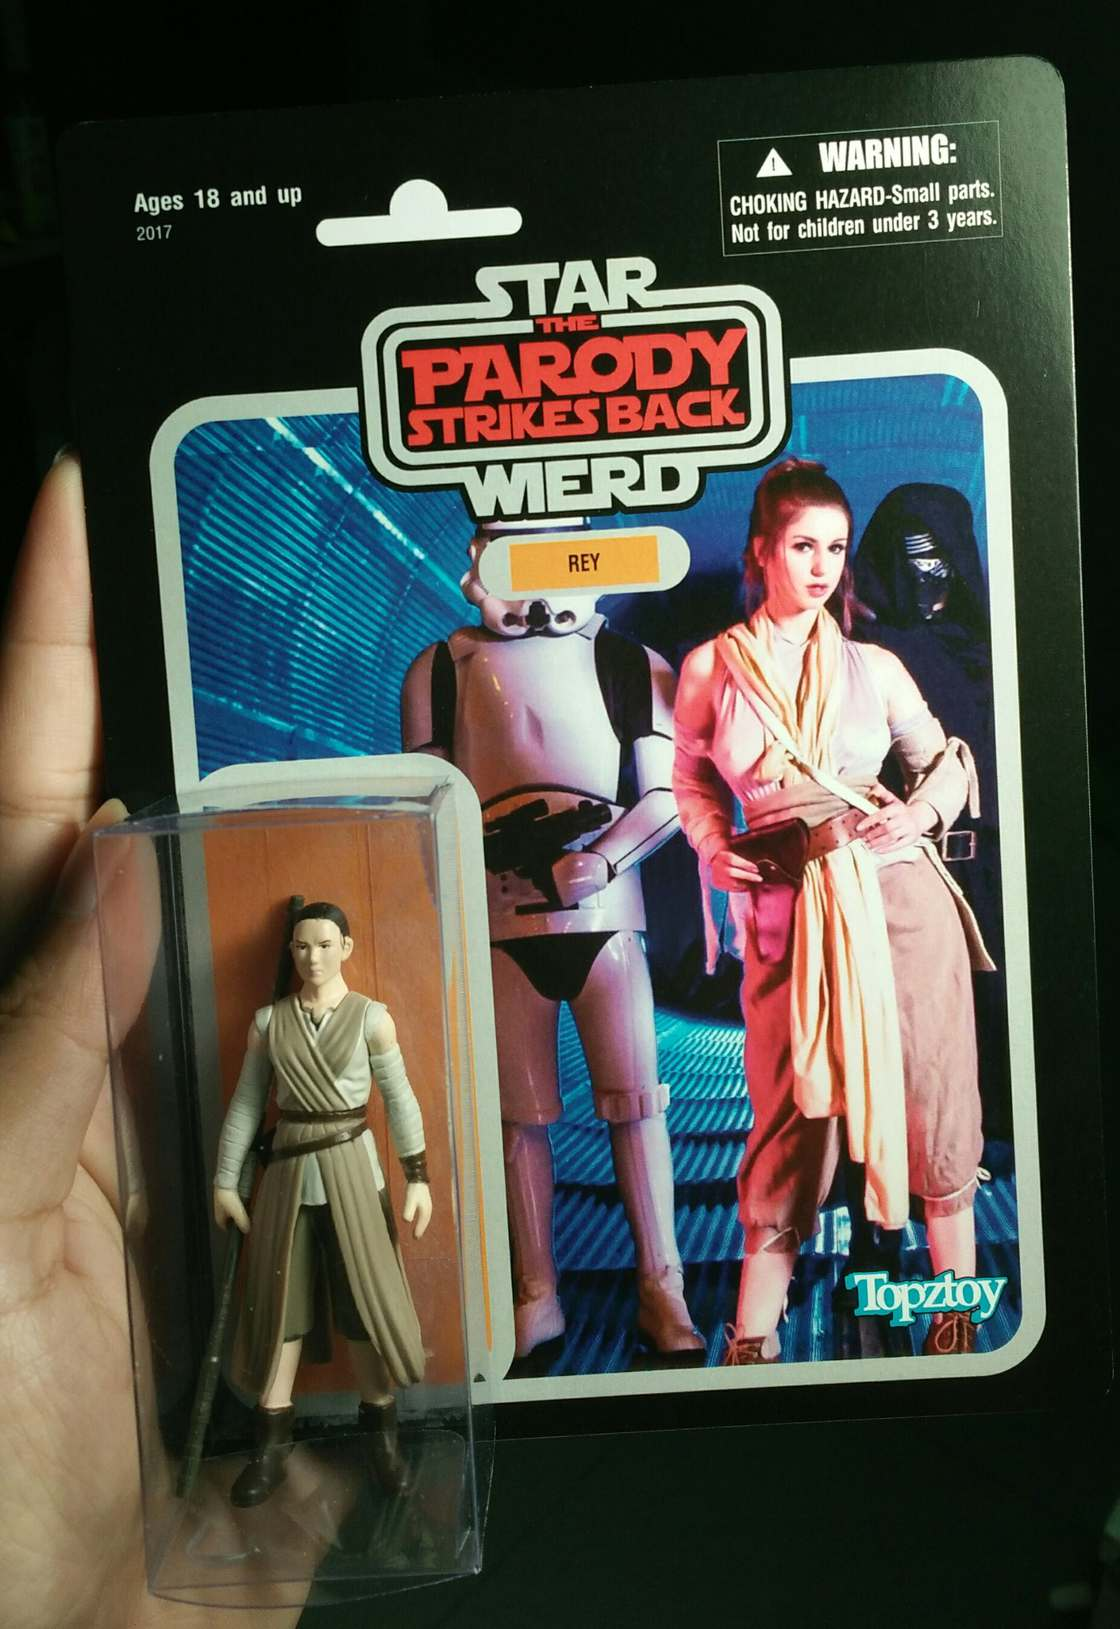 Now even the porn parody of Star Wars has its own figurines